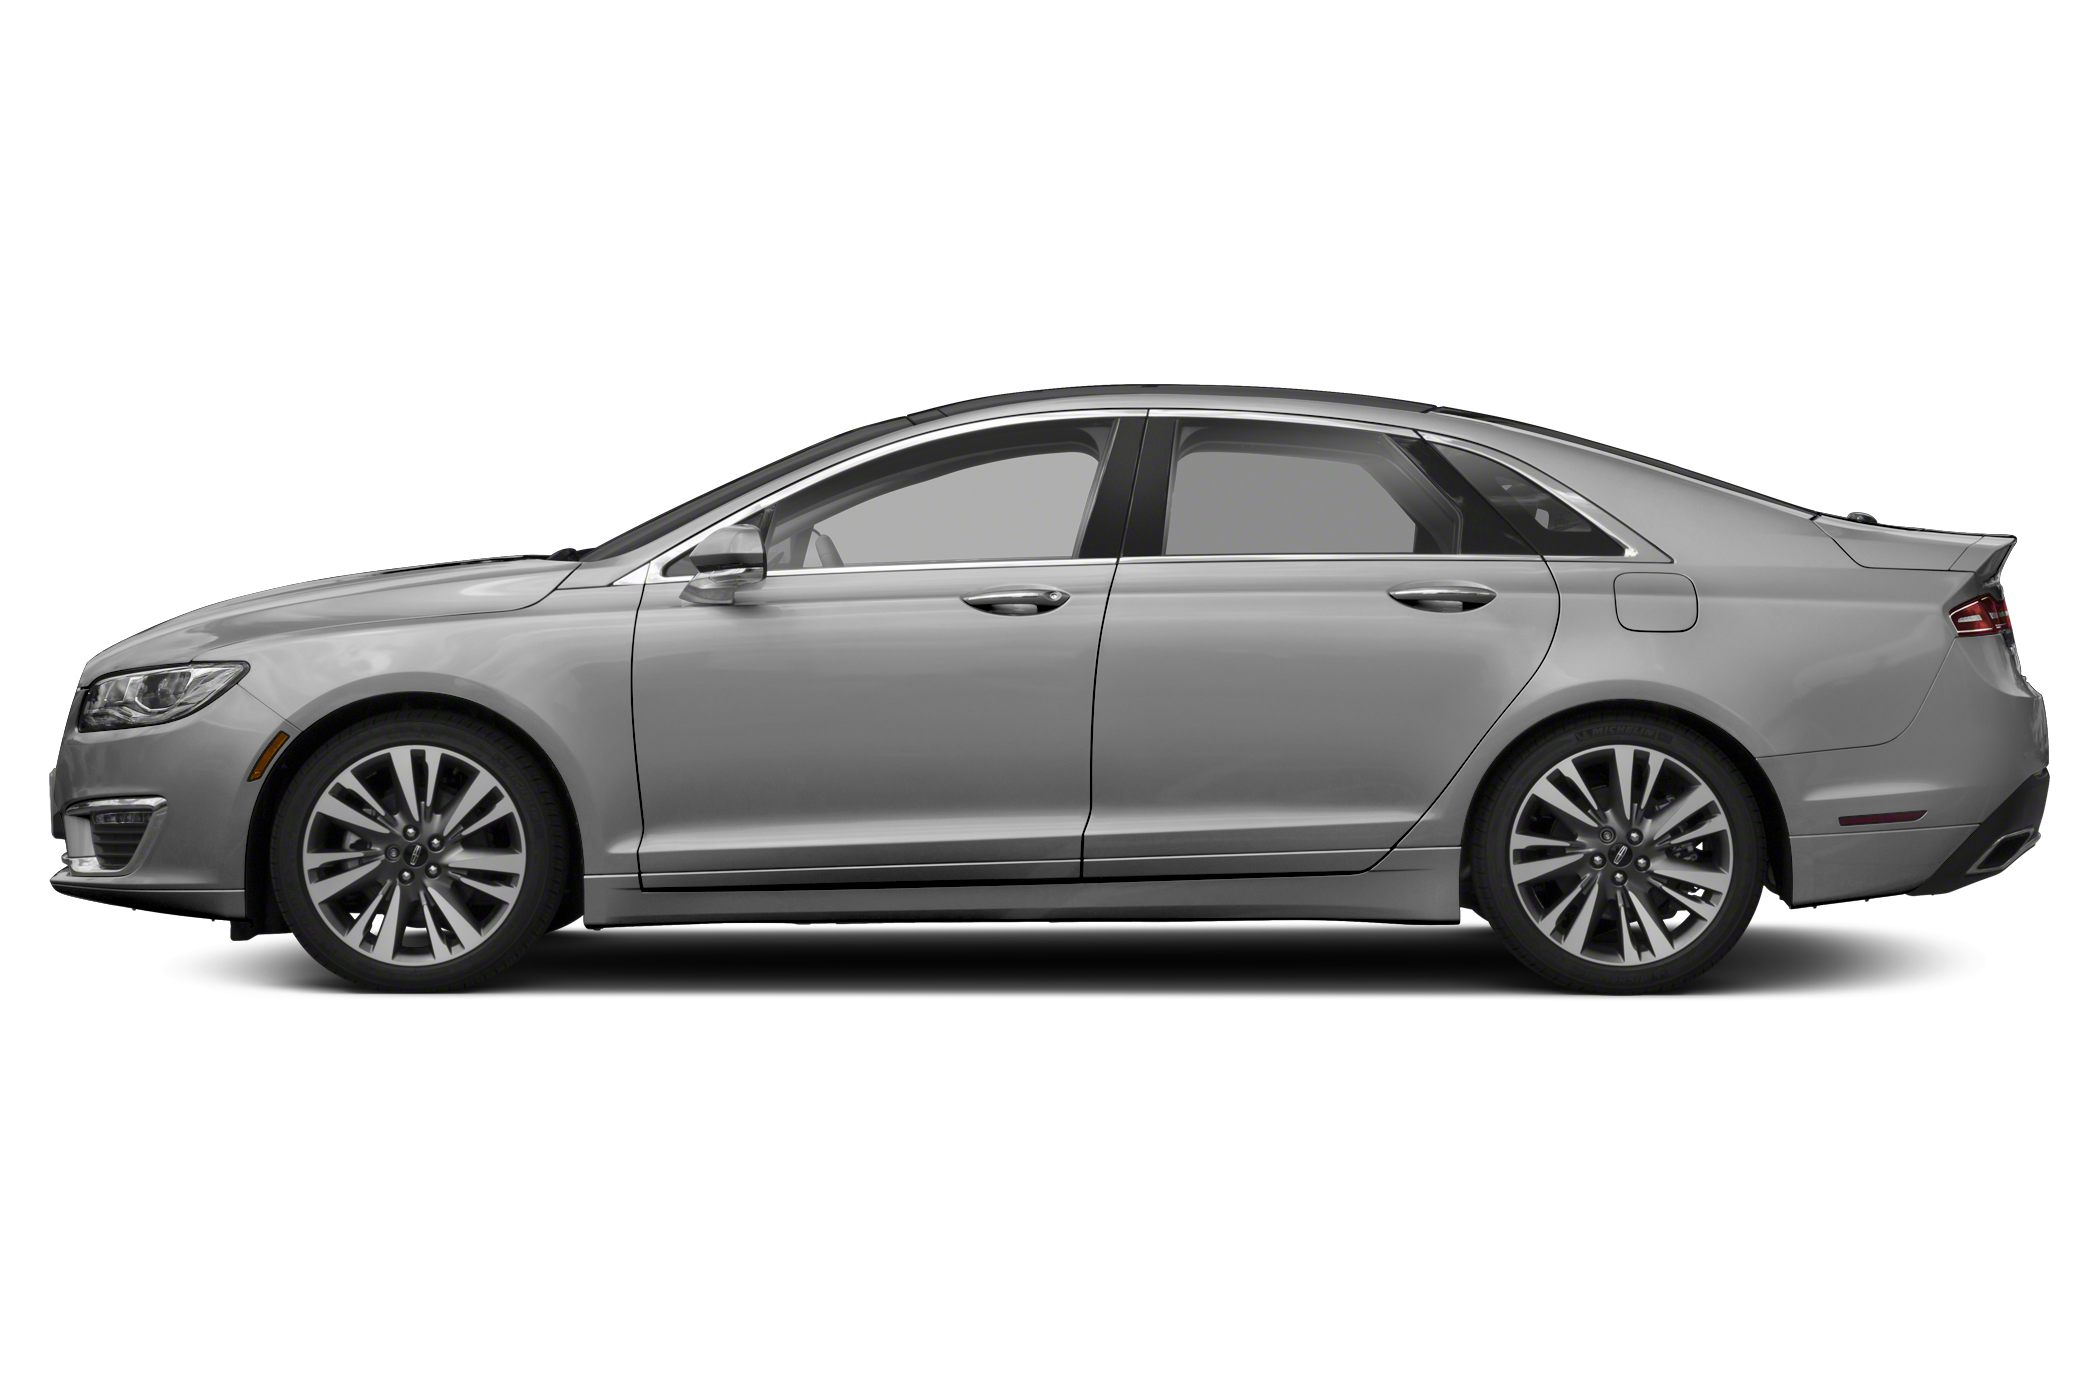 mkc lincoln mkz topic leasing lease pricing buying ordering announced a